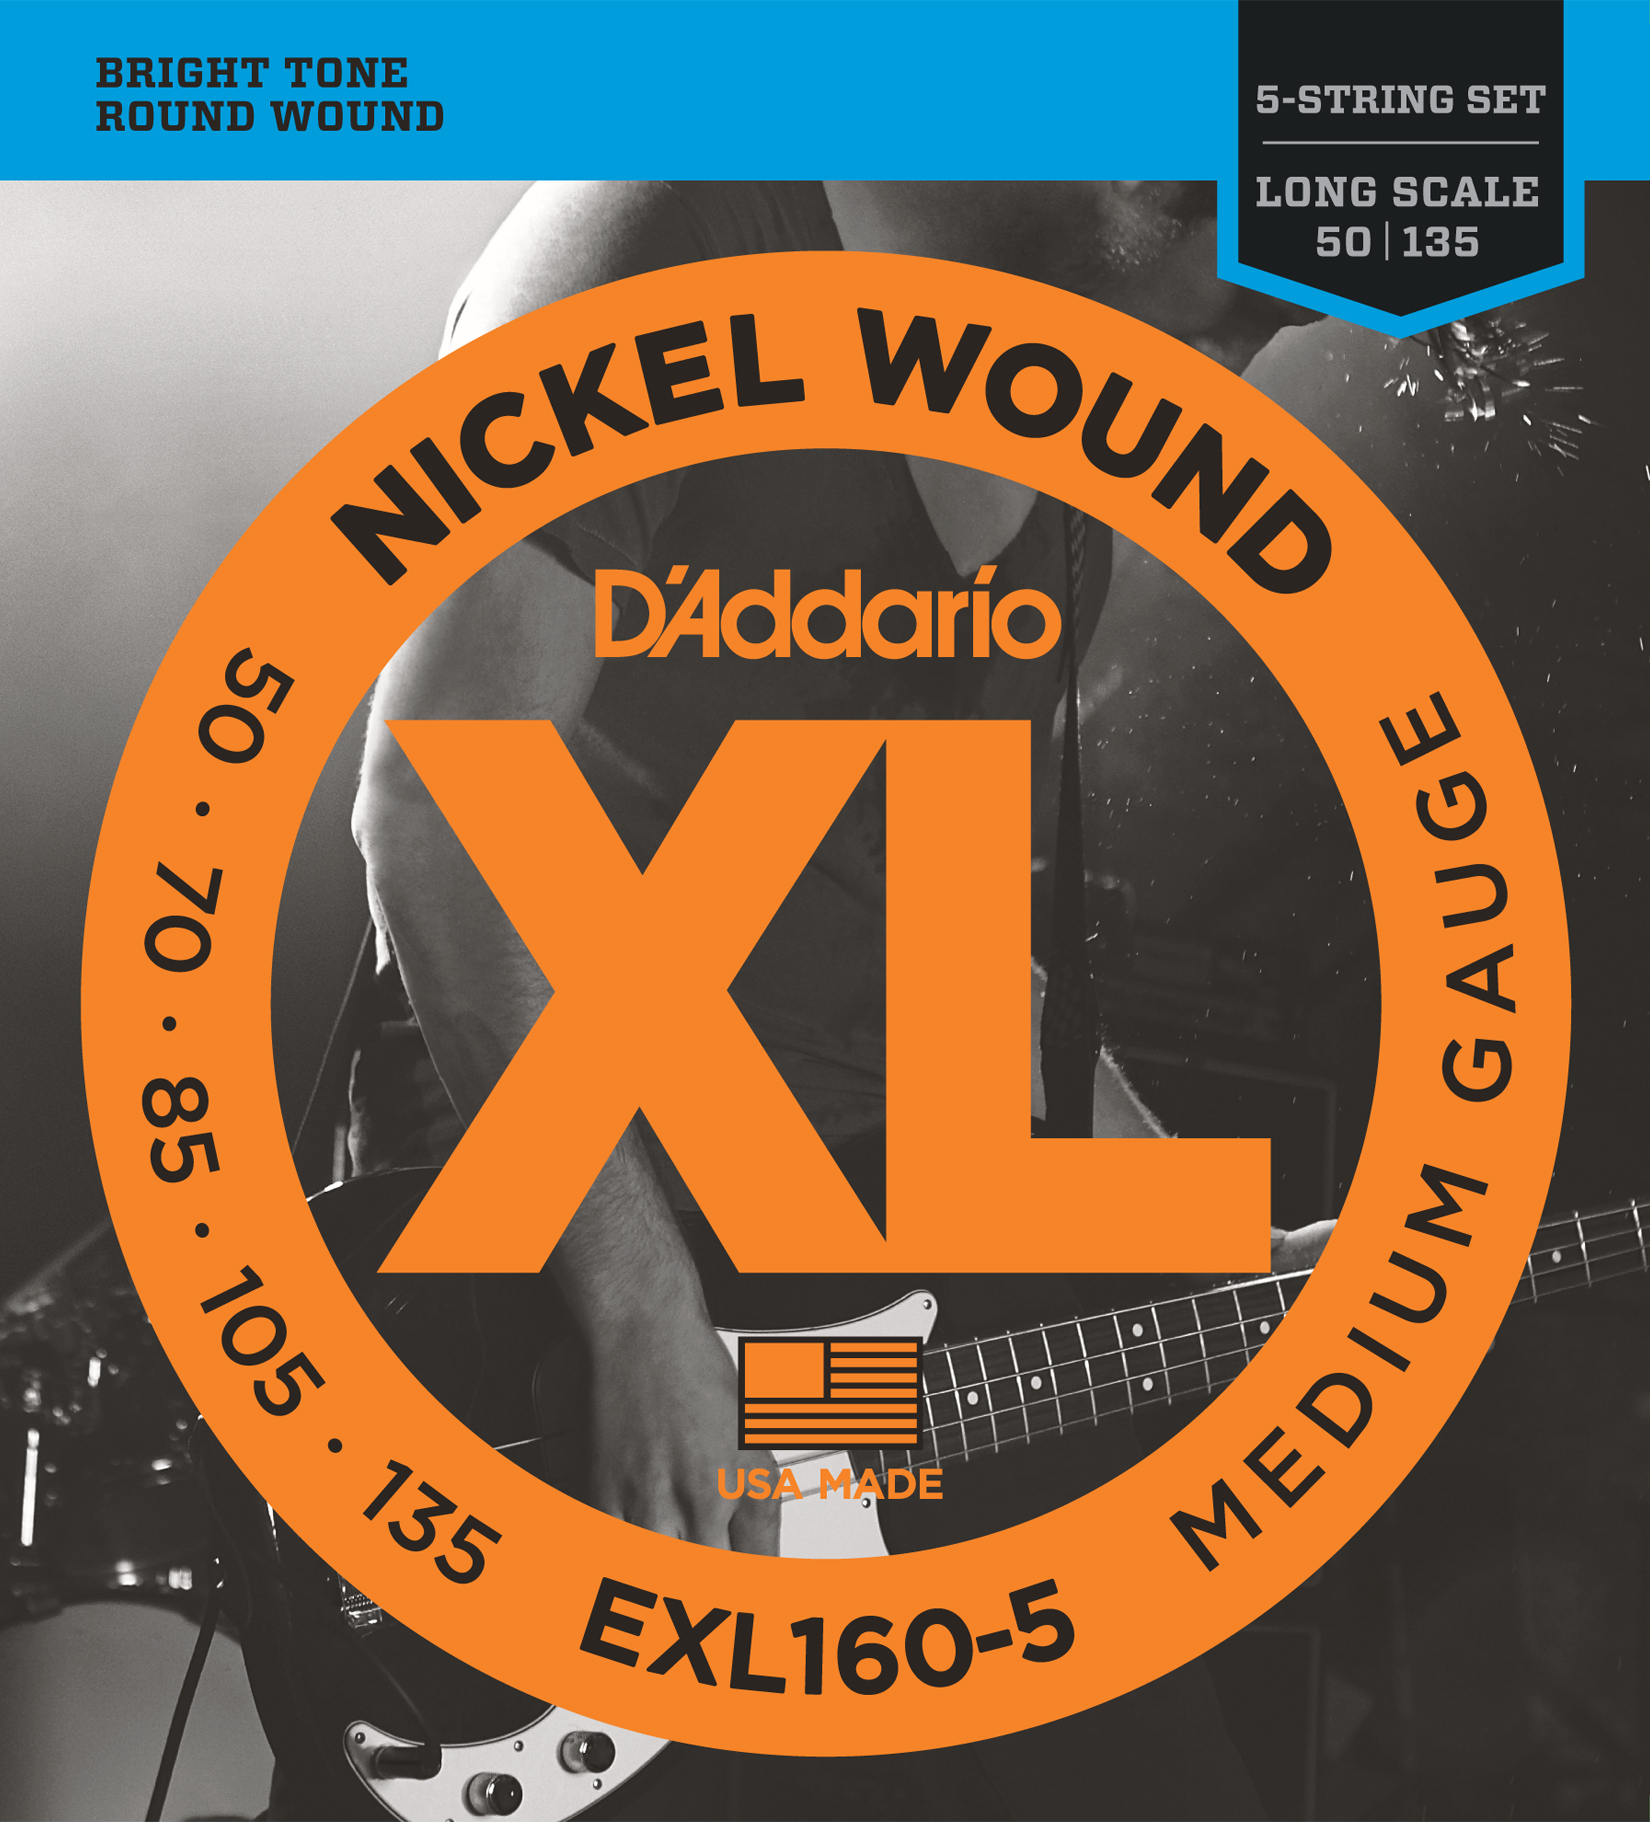 D'Addario EXL160-5 5-String Nickel Wound Bass Guitar Strings, Medium, 50-135 Lon...